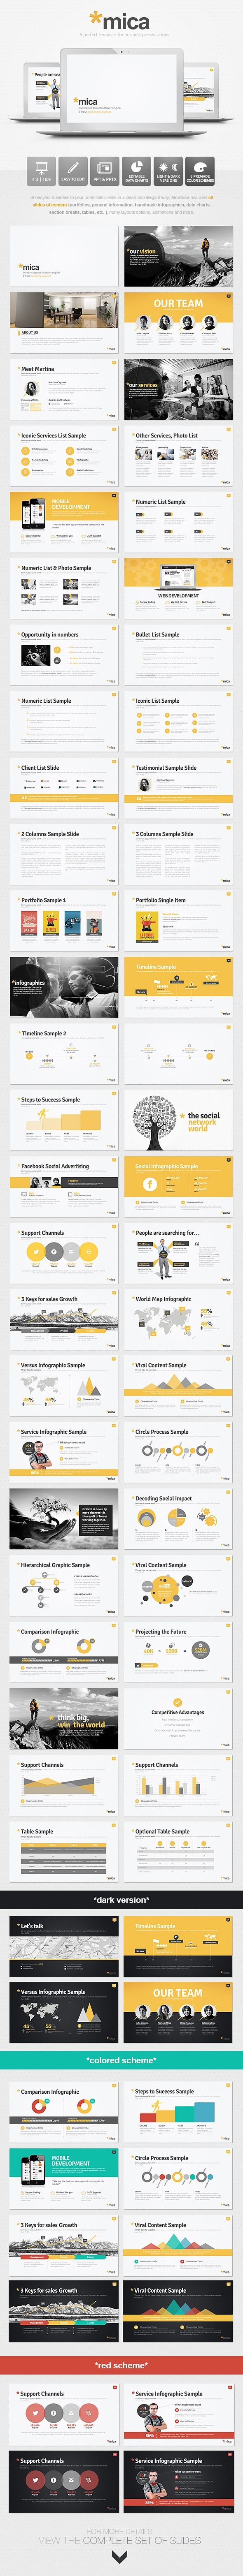 Mica Powerpoint Presentation Template - PowerPoint Templates Presentation…